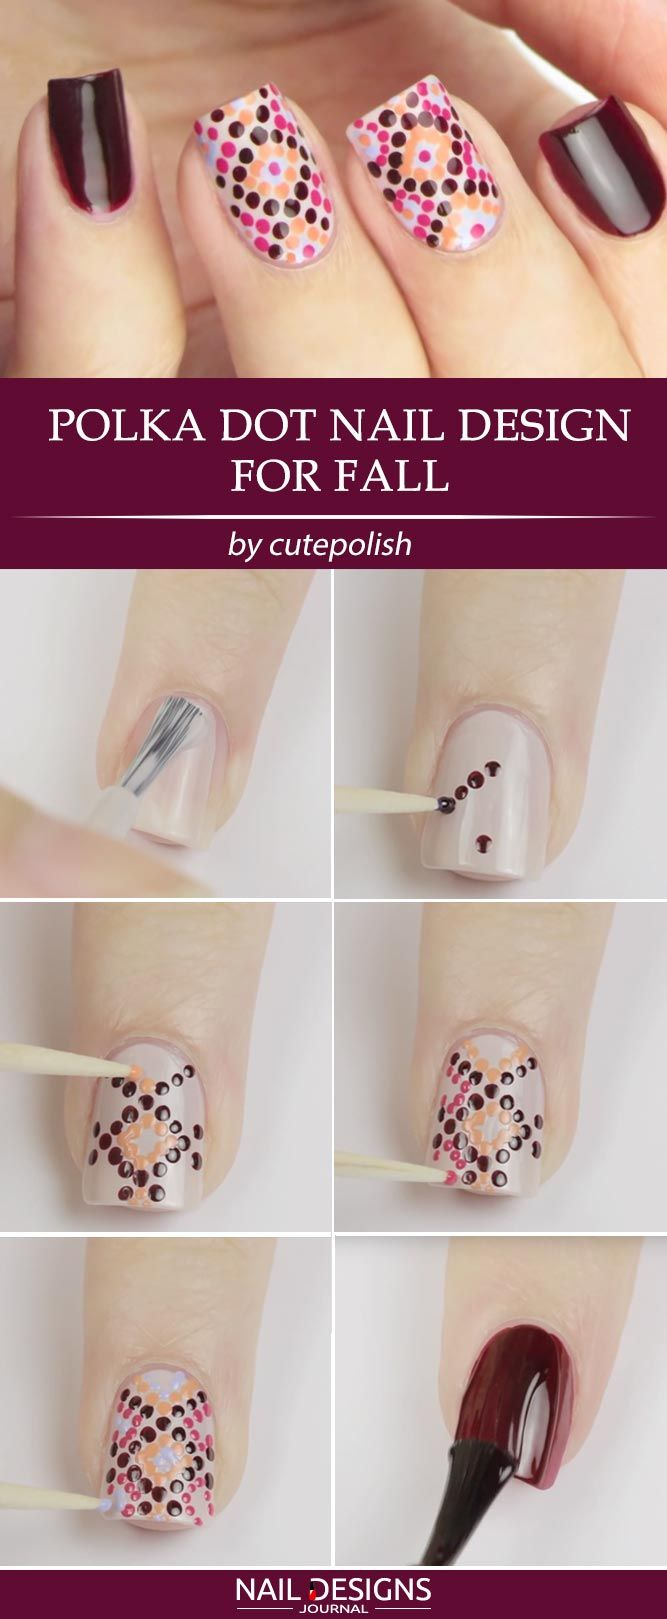 3 Superb Burgundy Nail Designs For Fall You Need To Try Nail